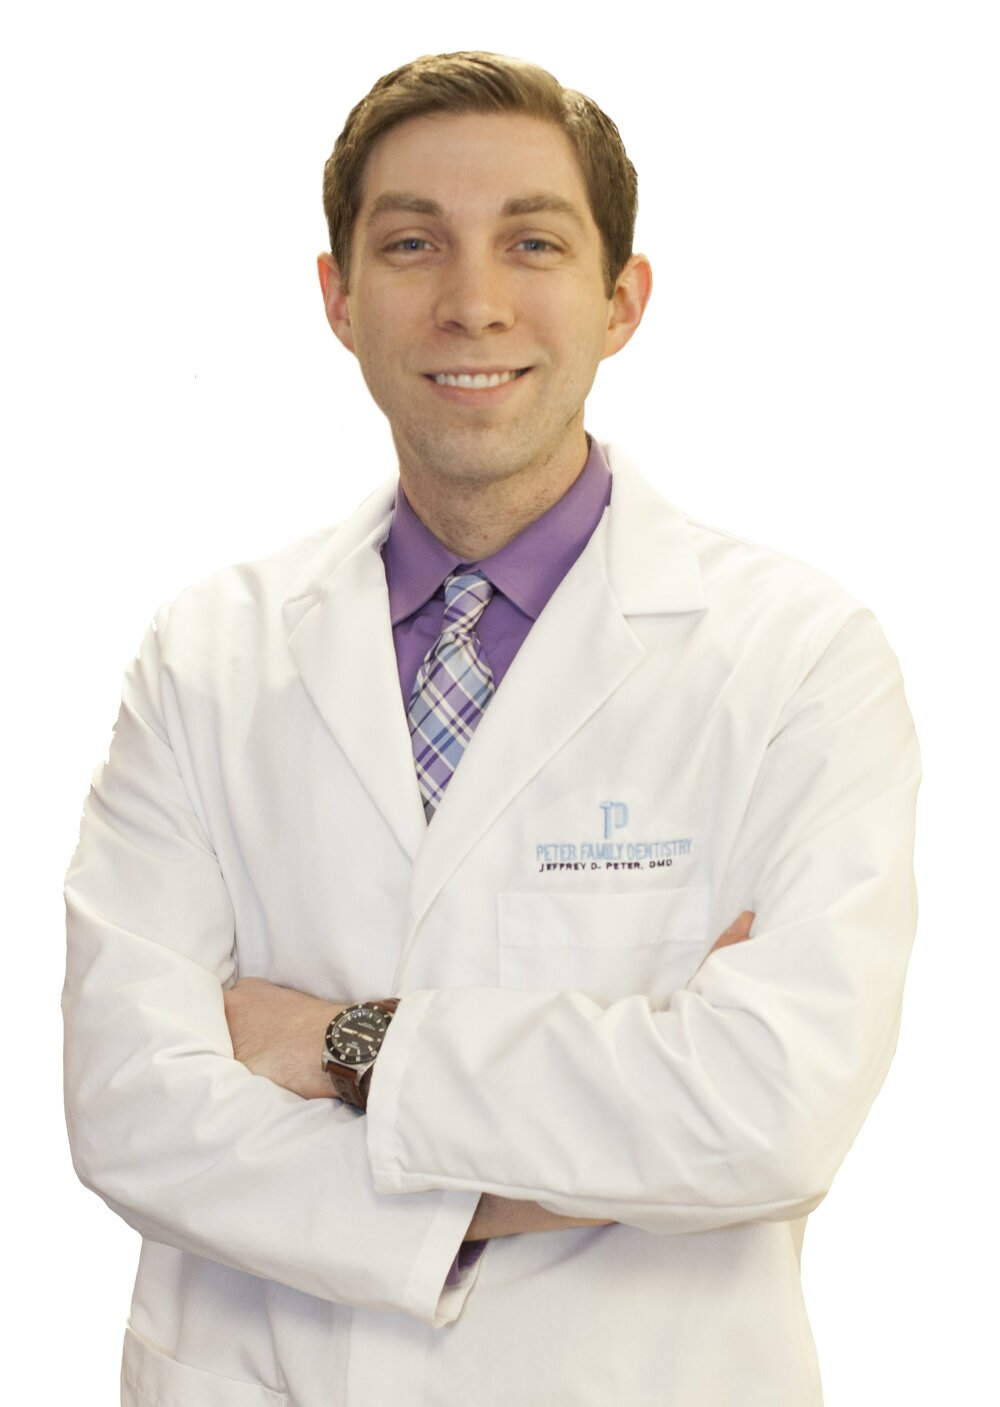 Dr. Peter at Peter Family Dentistry in Independence, KY offers family and cosmetic dentistry solutions.